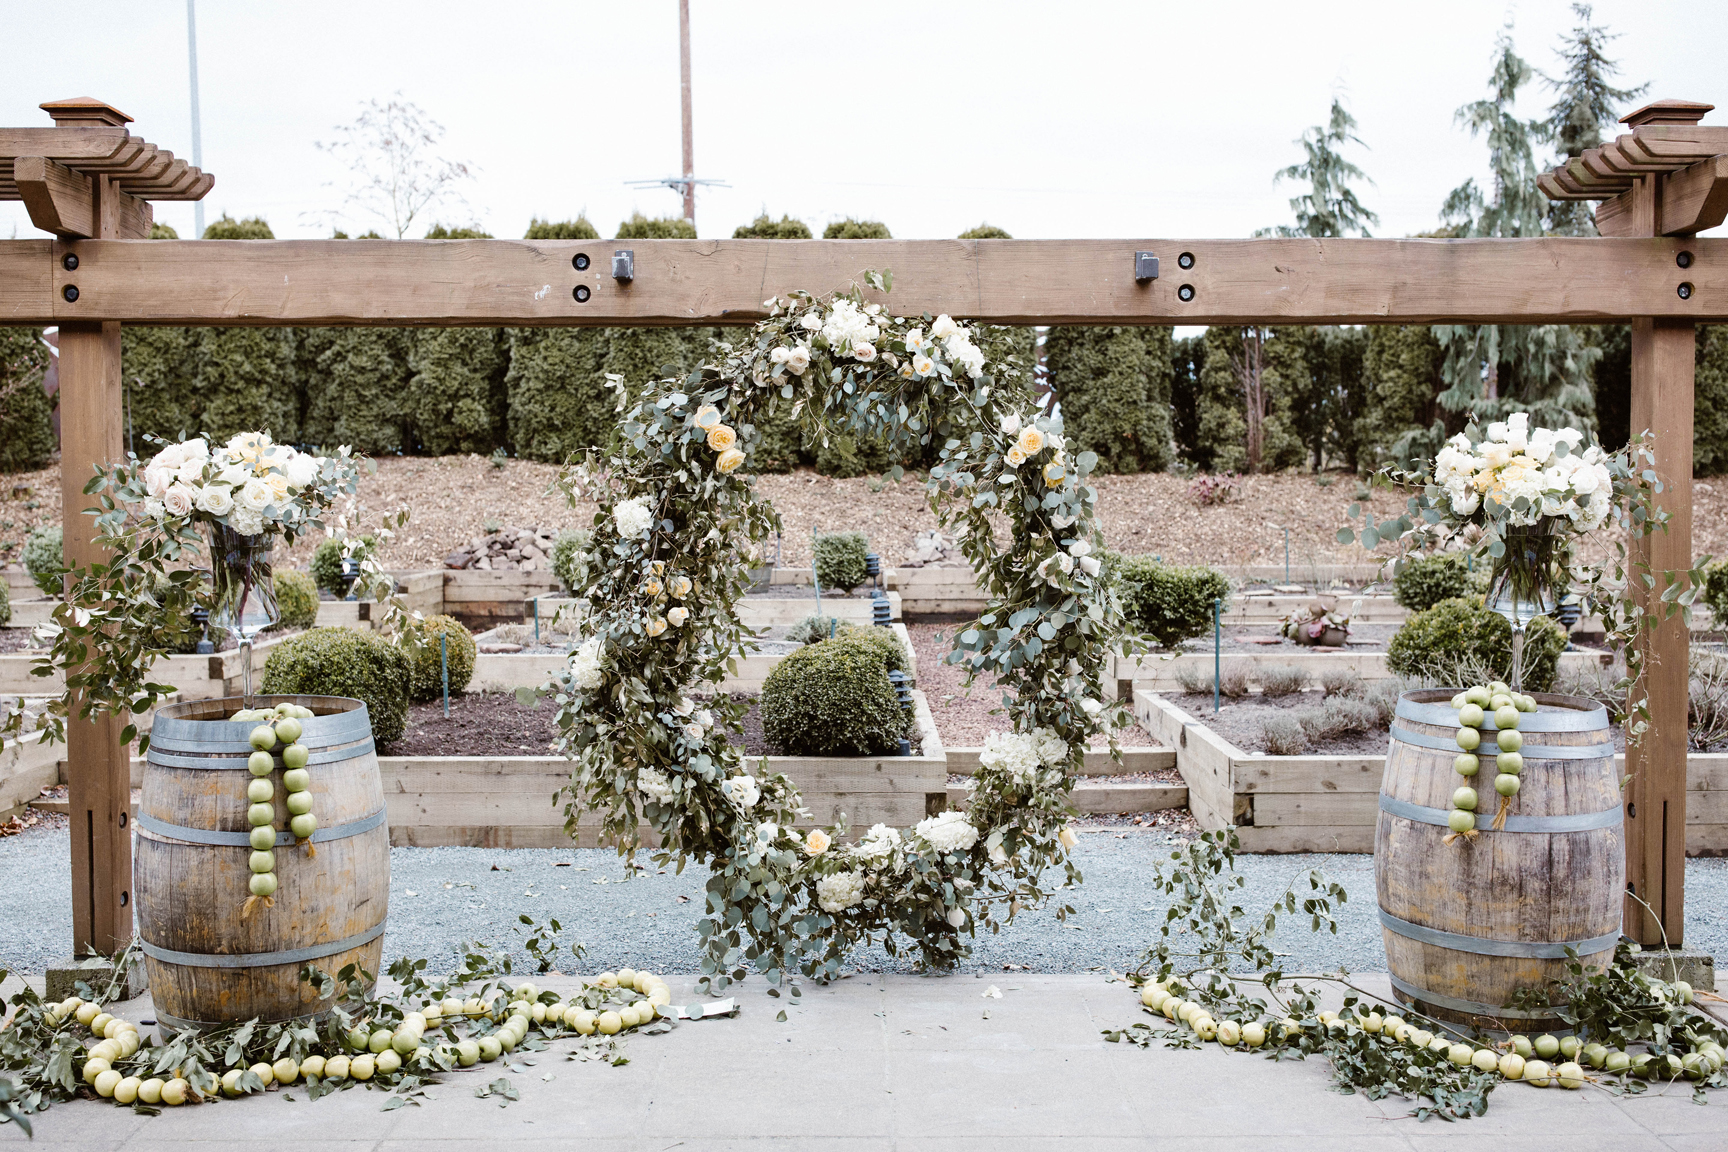 Willows+Lodge_Woodinville_2017_Weddings+In+Woodinville196.jpg